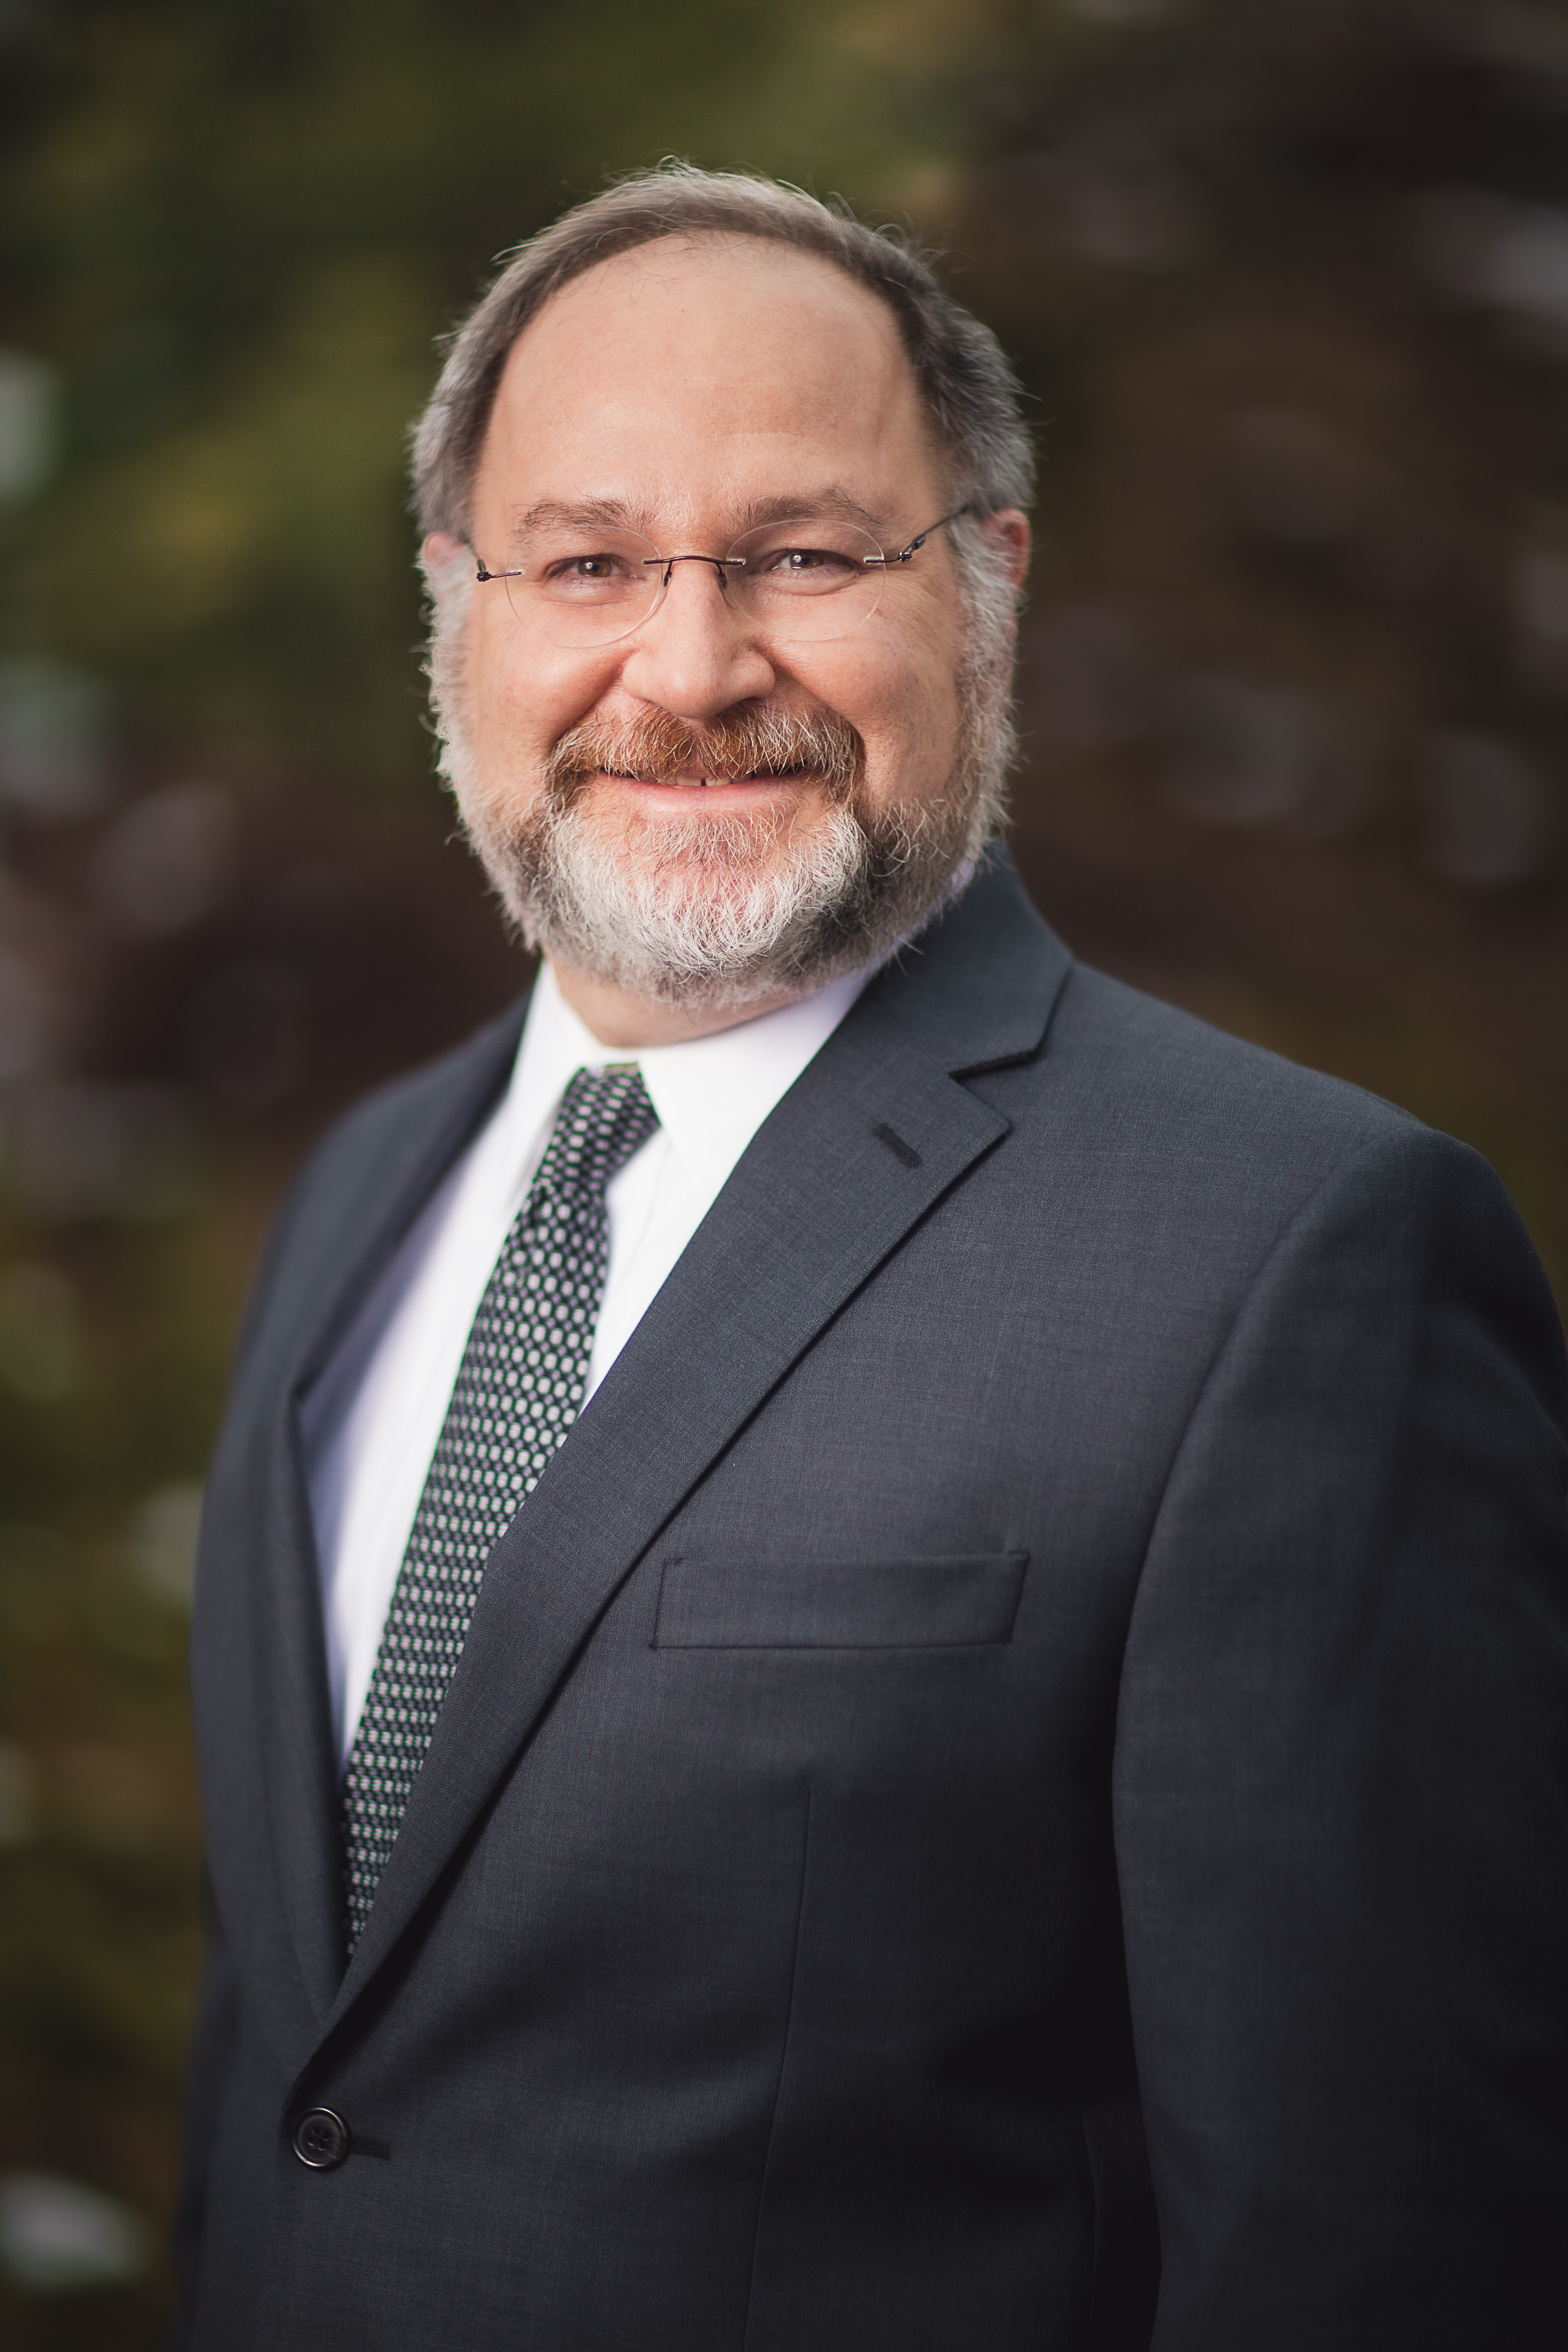 Erik is a Maryland Attorney experienced in various legal settings, higher education, government agencies, non-profit organizations, and fine and performing arts.